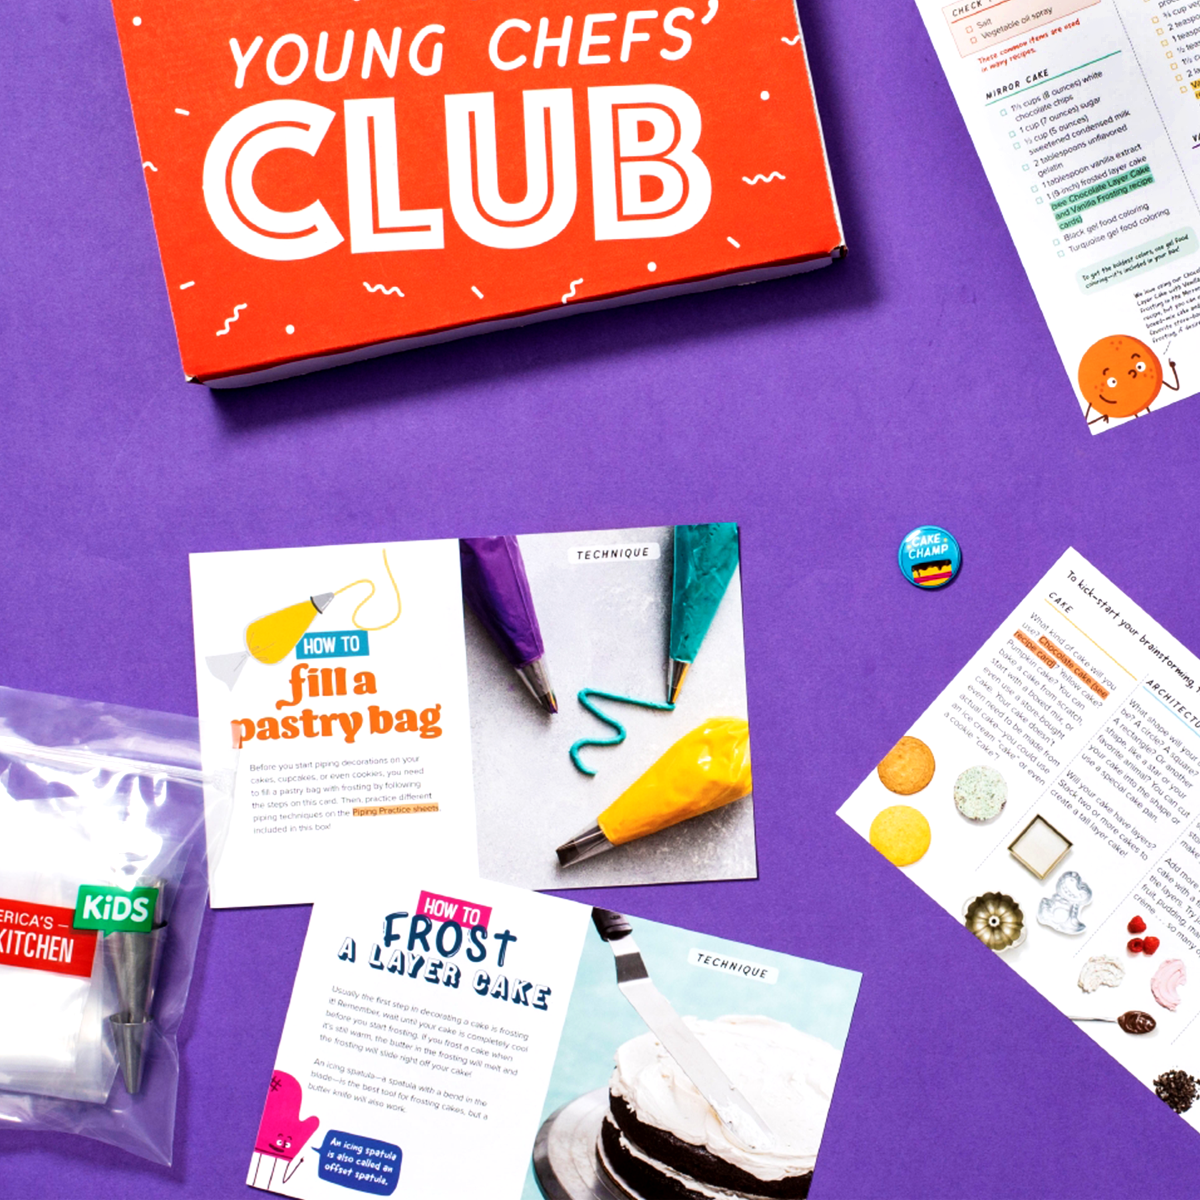 The Young Chefs' Club Cake Decorating Box